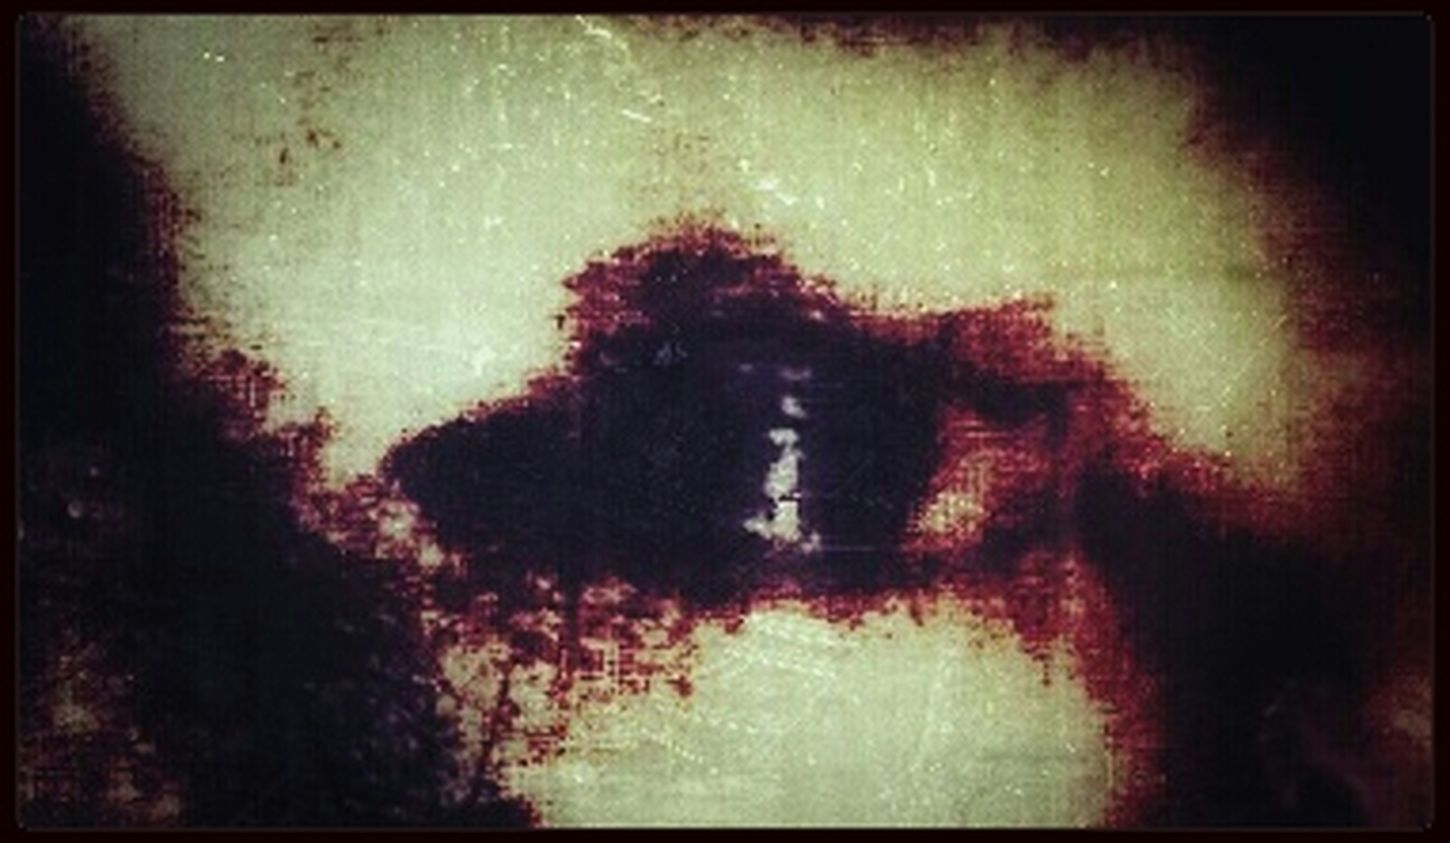 The blood from my eye, once flowed inside. Where before flowed tears of joy and of pain. Now filled with eternal emptiness and silence cried. On the surface, just a stain of what remains. Have A Frightful Halloween ;) Halloween Horrors Fearing The Imagination Darkart